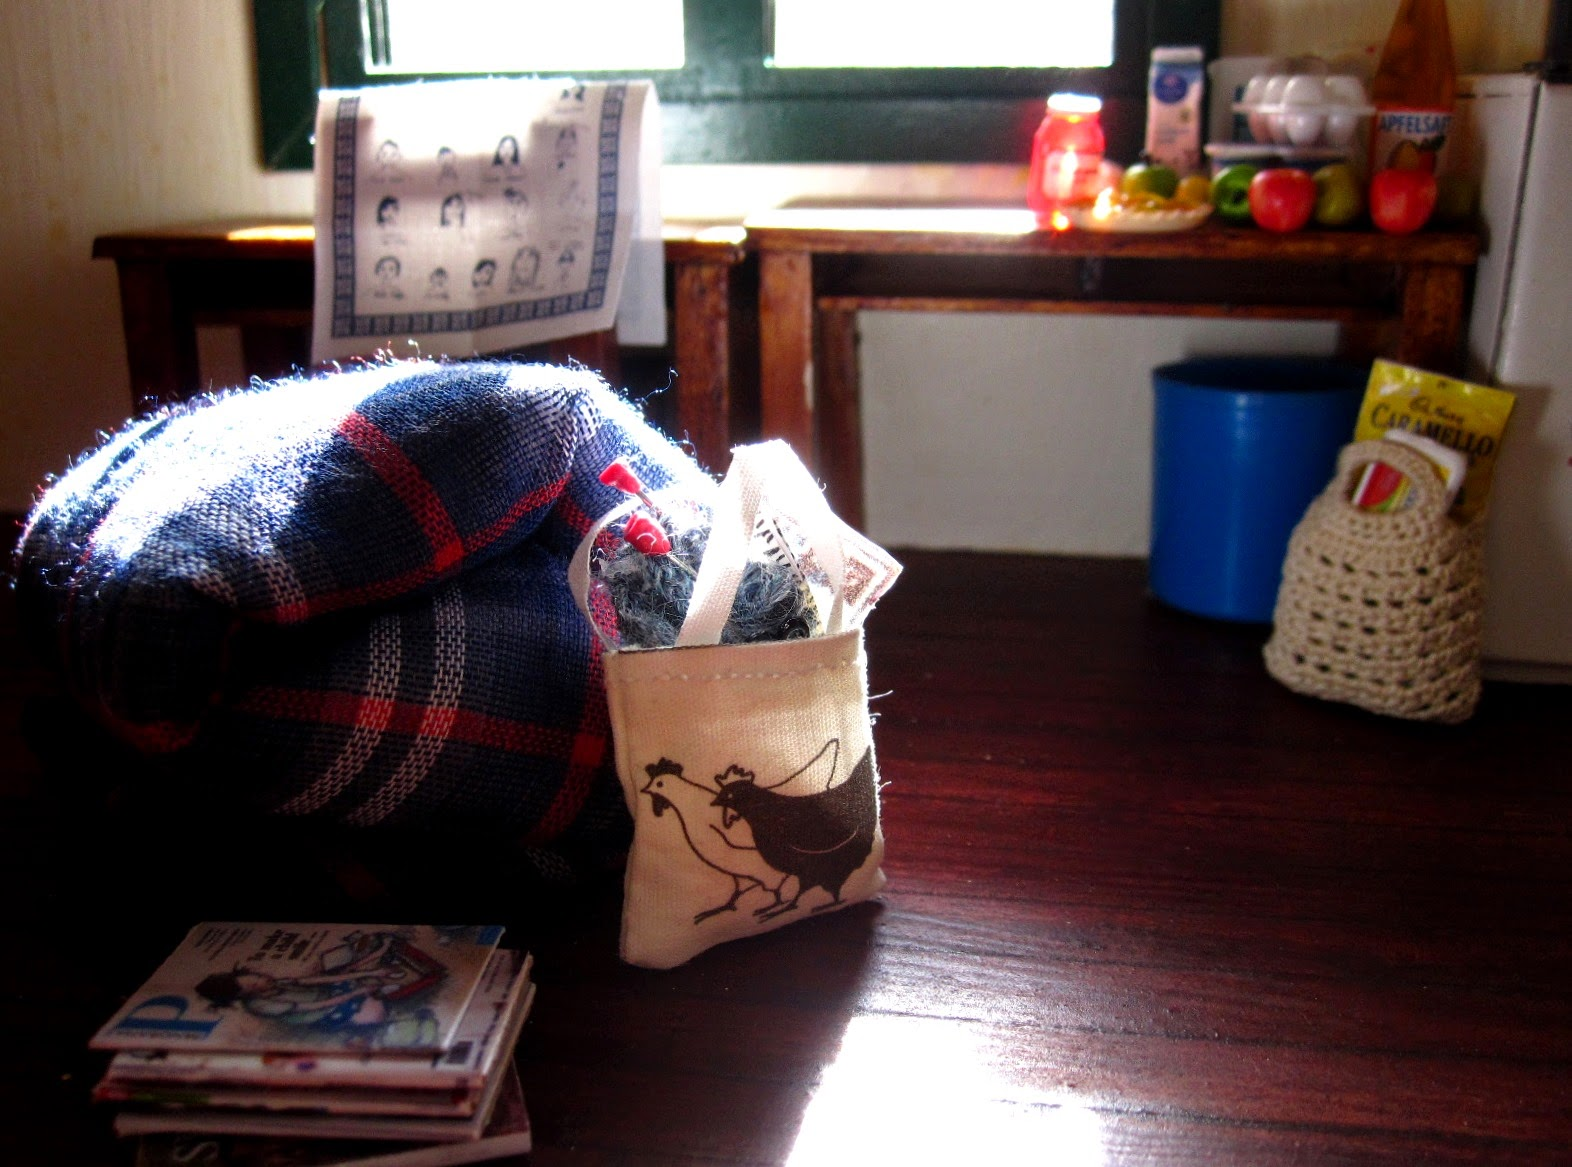 Inside of a miniature holiday house, showing a doona rolled up on the floor next to a pile of magazines and a bag of knitting. On the table behind is a selection of miniature grocery items, and a bag of groceries is on the floor underneath,